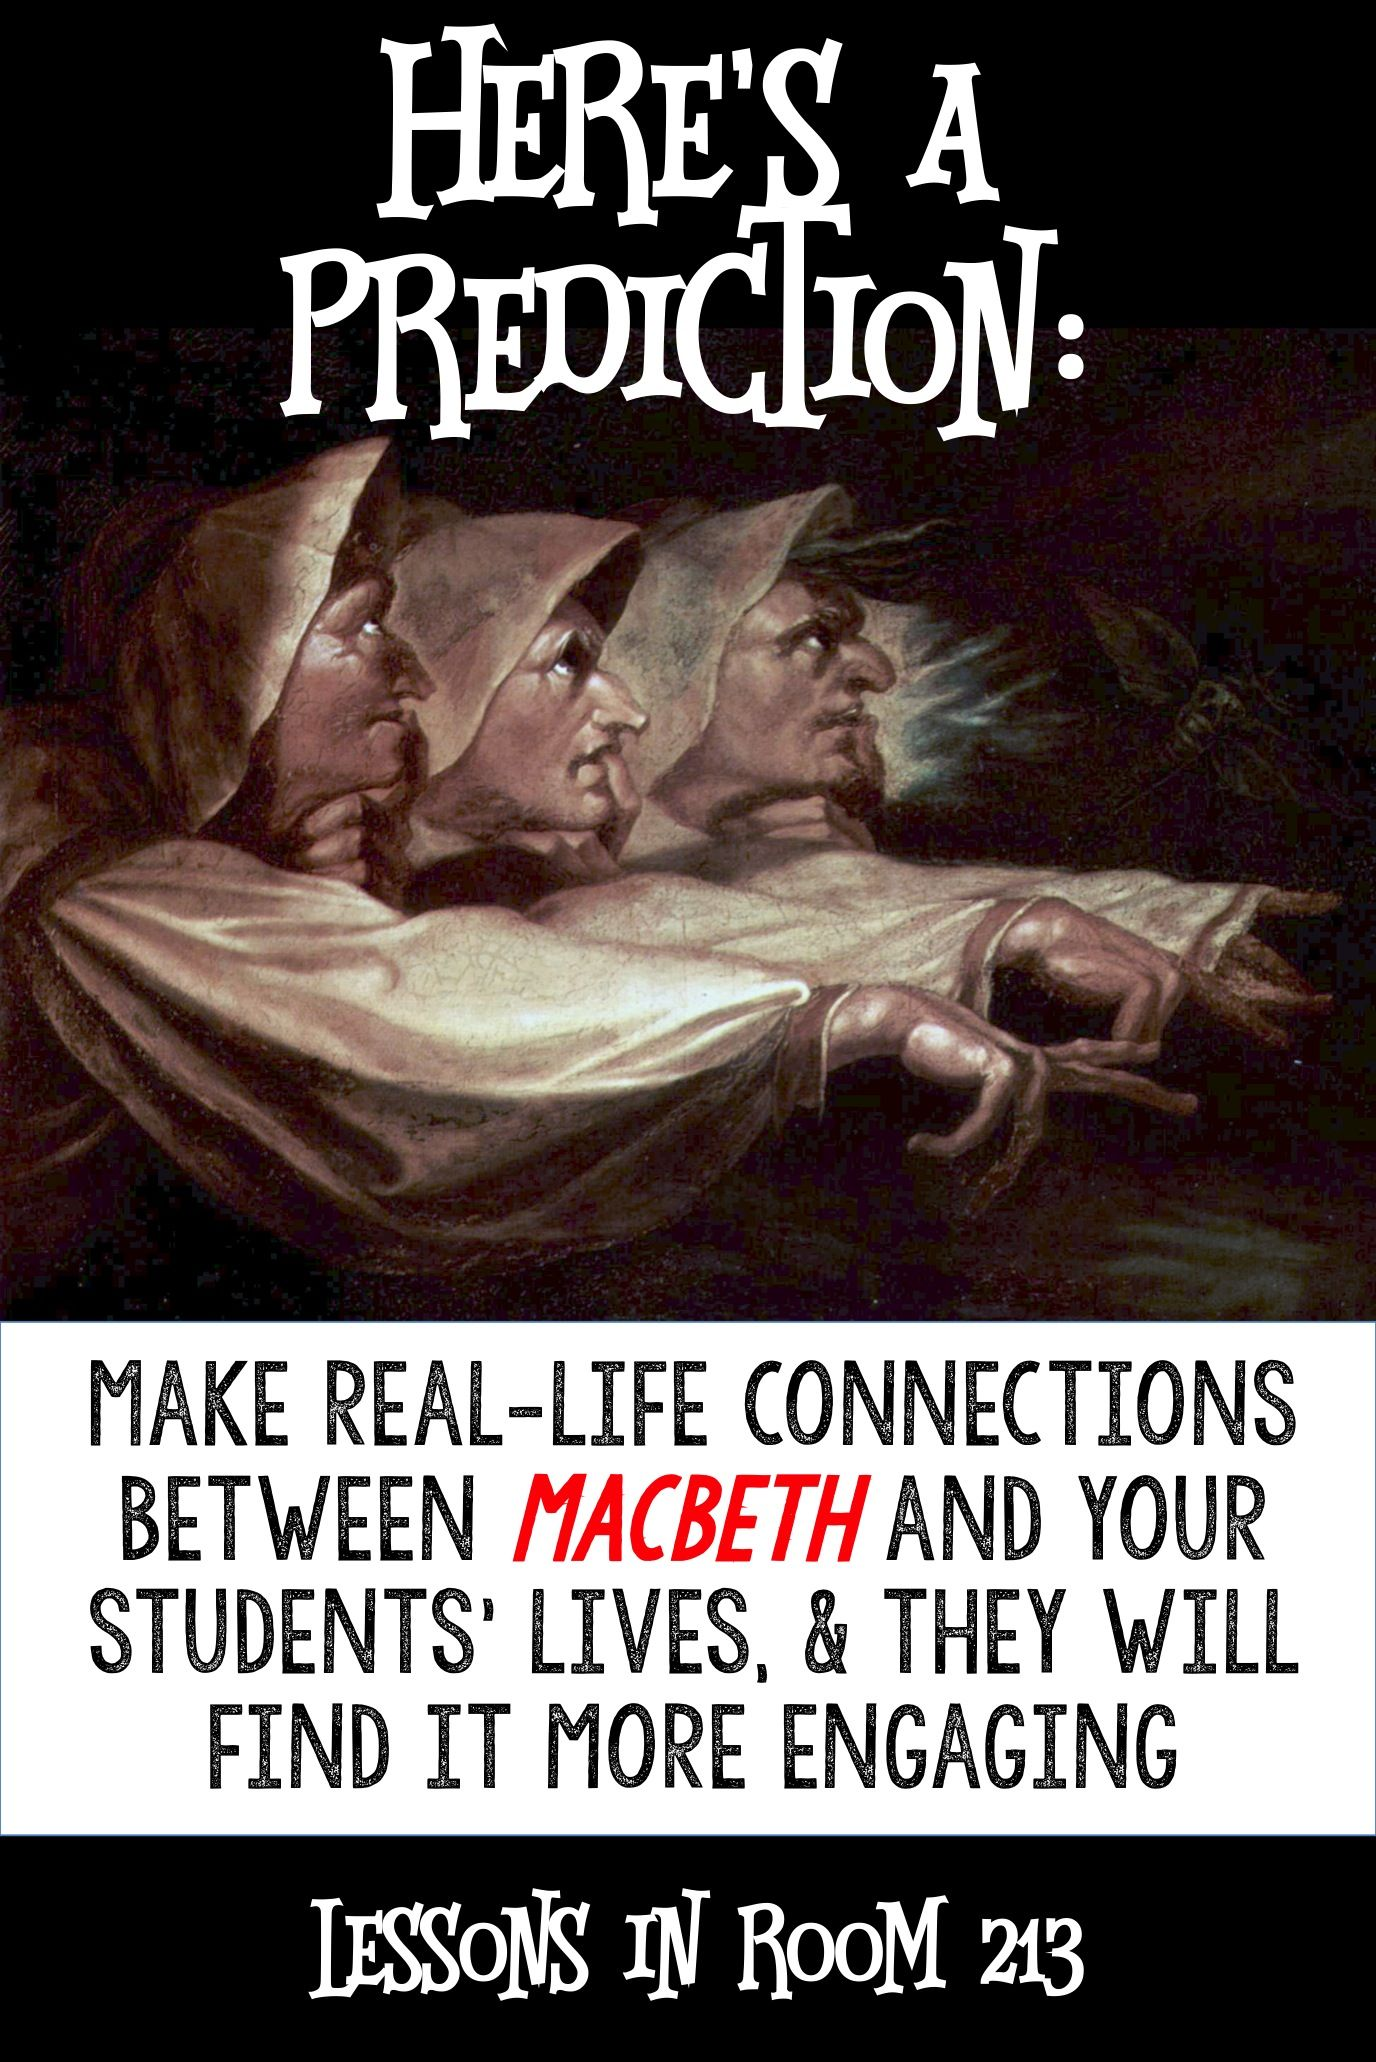 Macbeth activities assignments that make it real students macbeth lessons use an inquiry approach to show students how macbeth is relevant to their buycottarizona